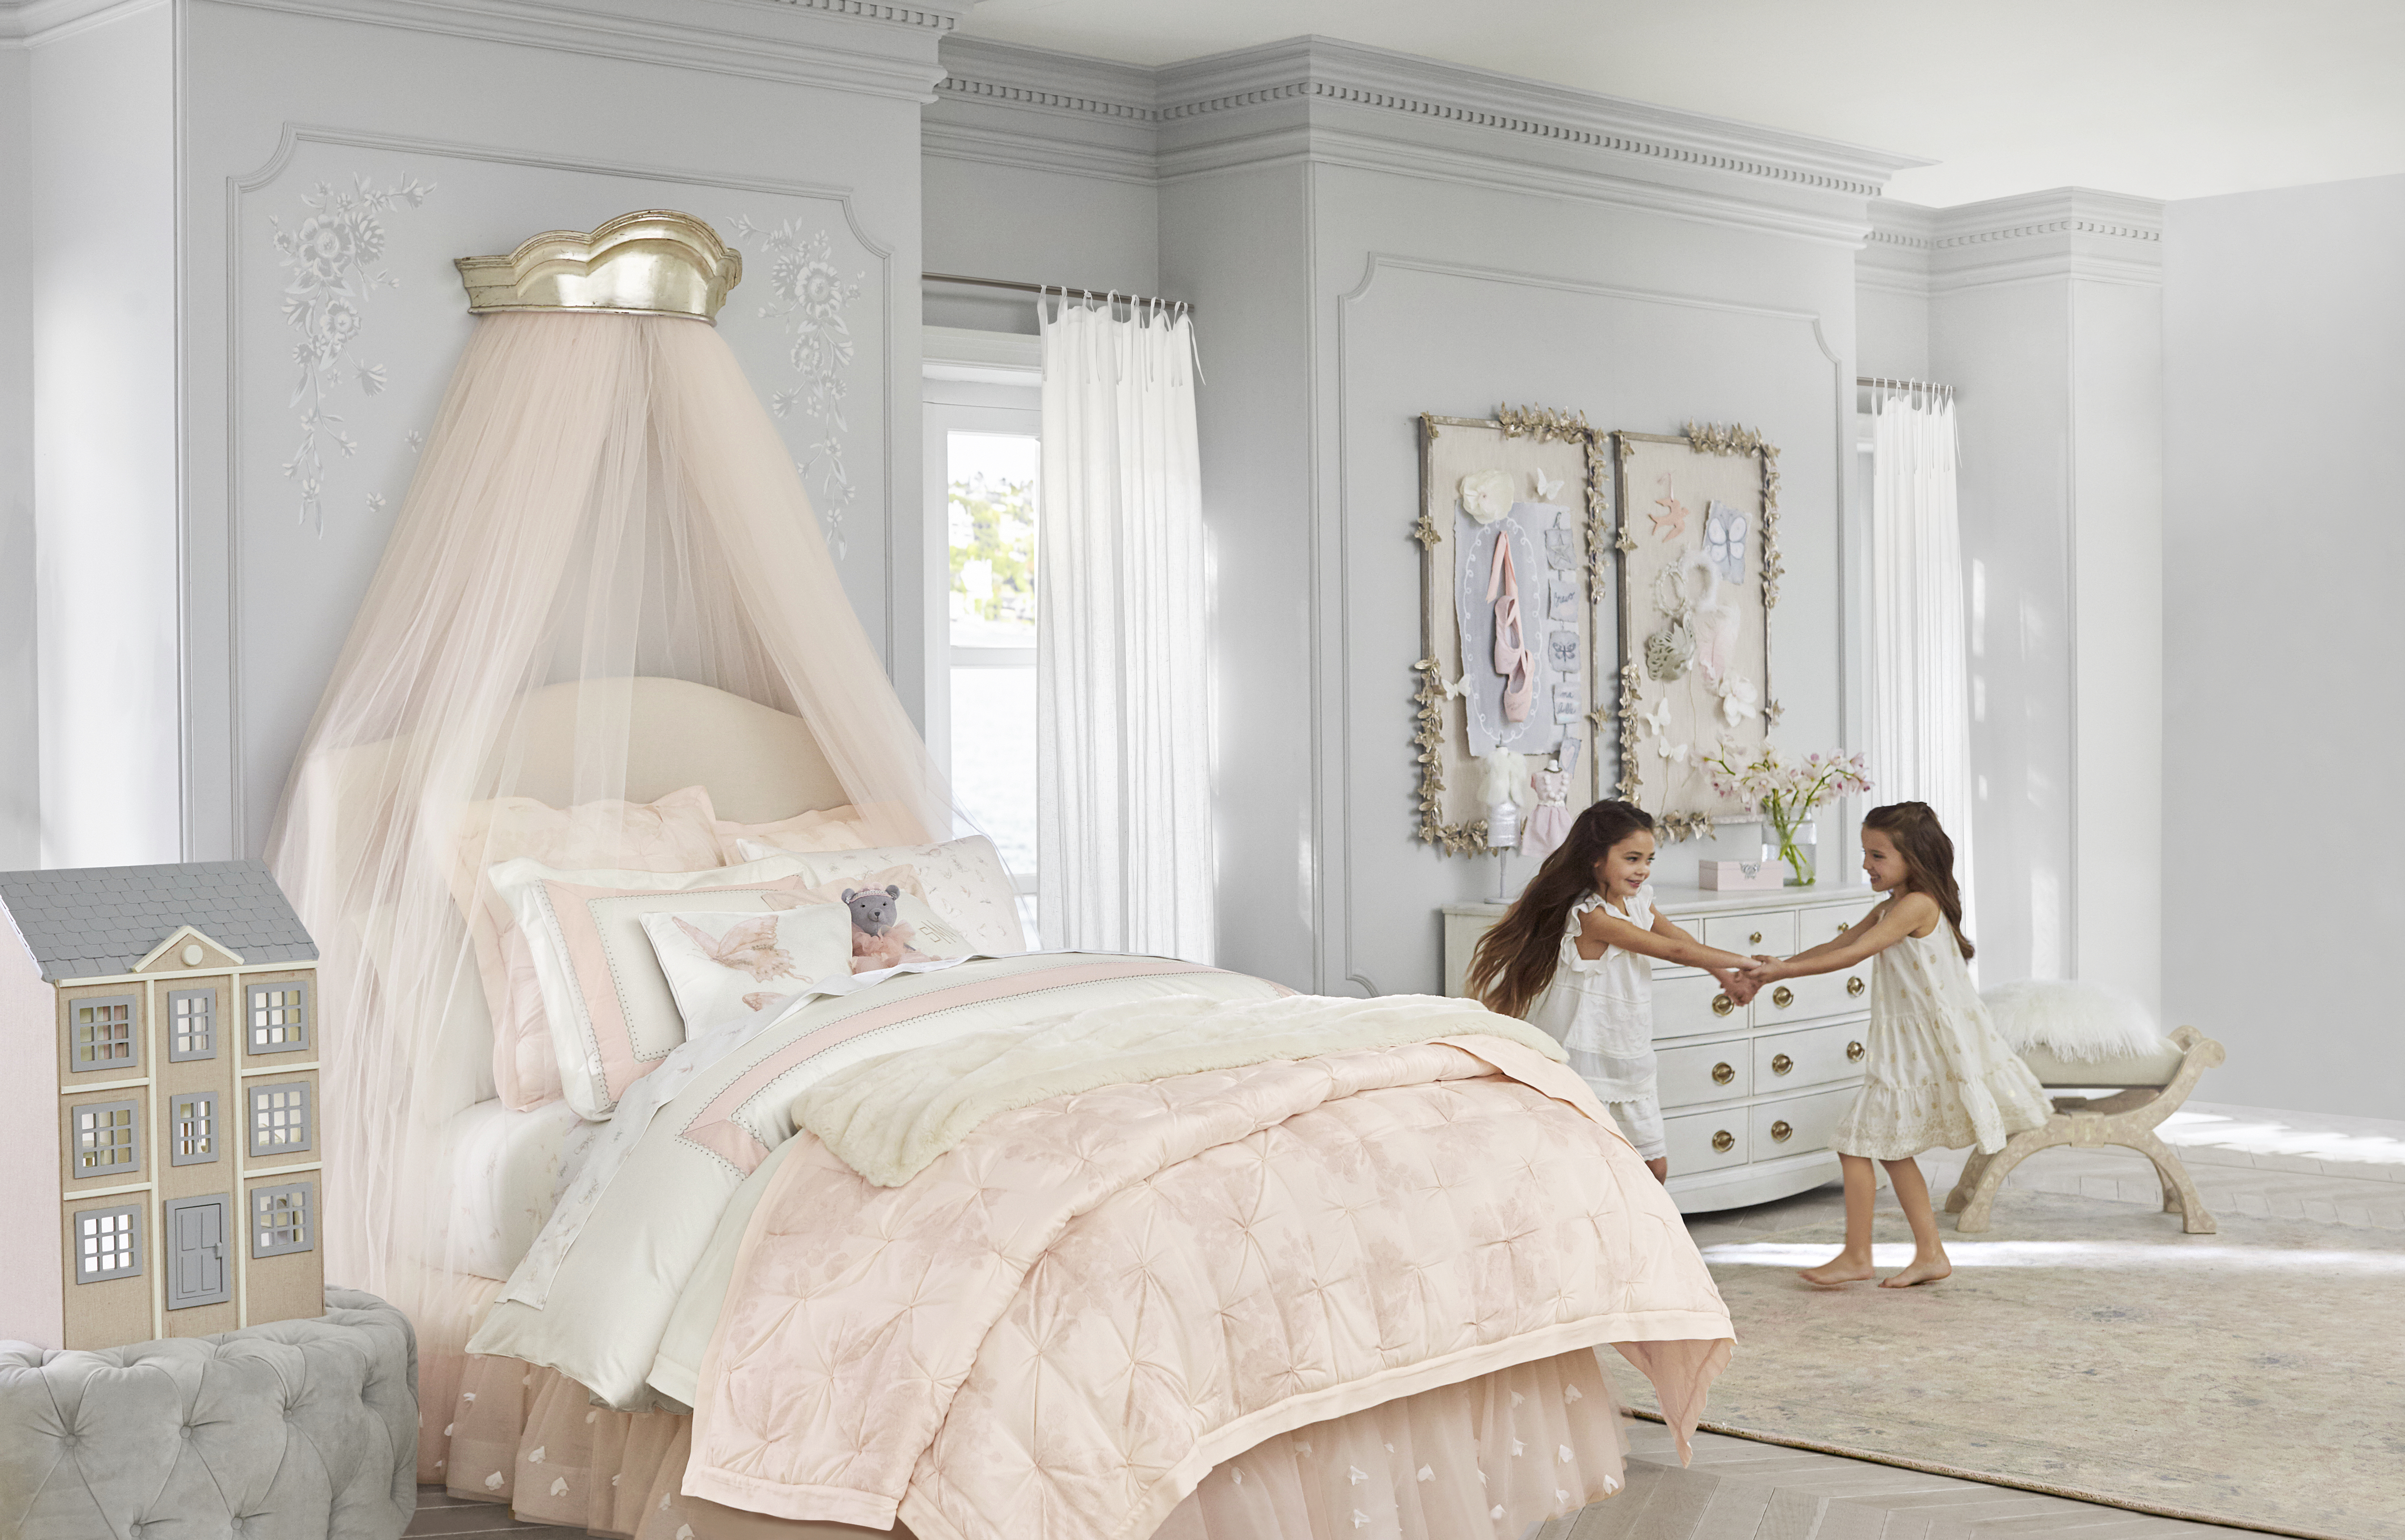 POTTERY BARN KIDS UNVEILS EXCLUSIVE COLLABORATION WITH LEADING ...